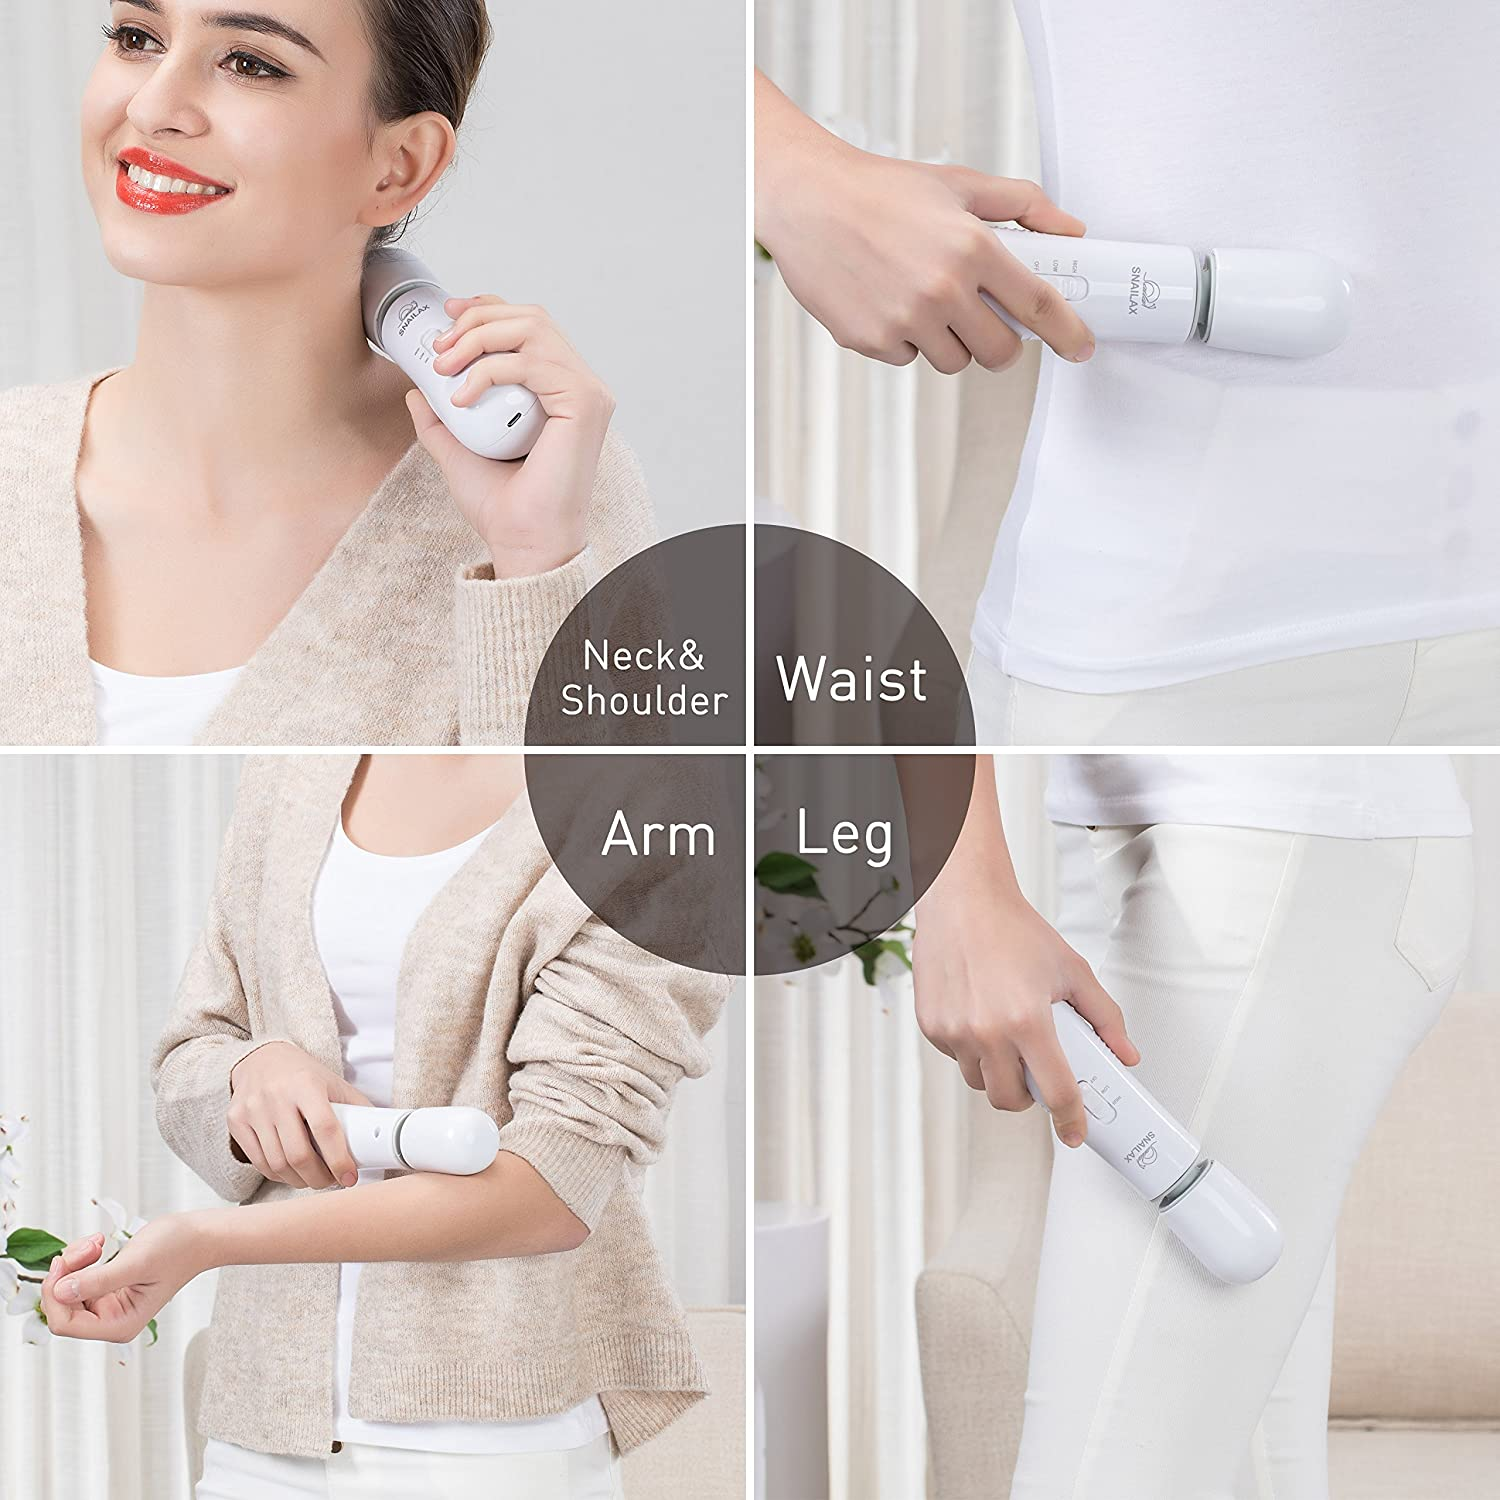 Cordless Wand Massager Handheld Massager for Neck and Back with 2 Vibration Speed Controller 3 Heads USB Rechargeable Personal Body Massager for Muscles Relief